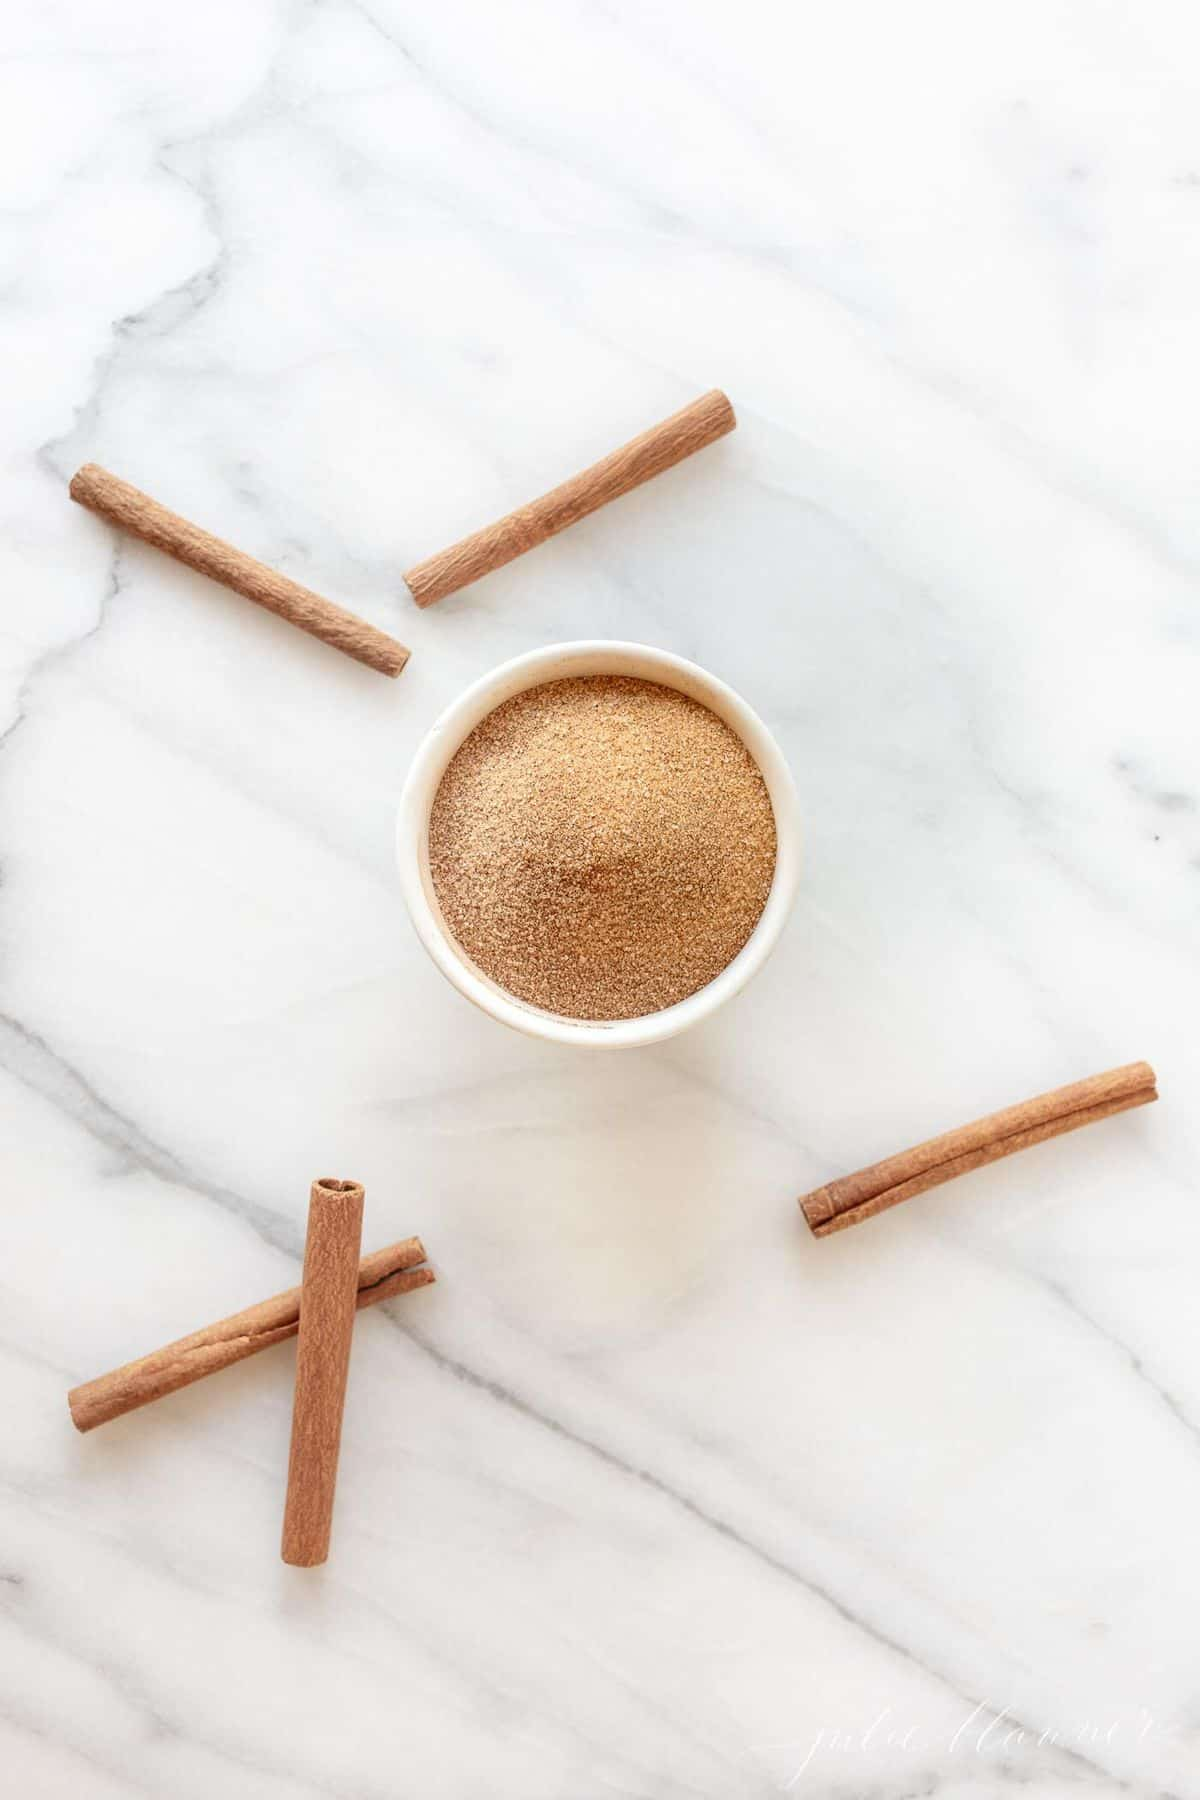 Marble surface with a bowl of the perfect cinnamon sugar ratio, cinnamon sticks strewn about.